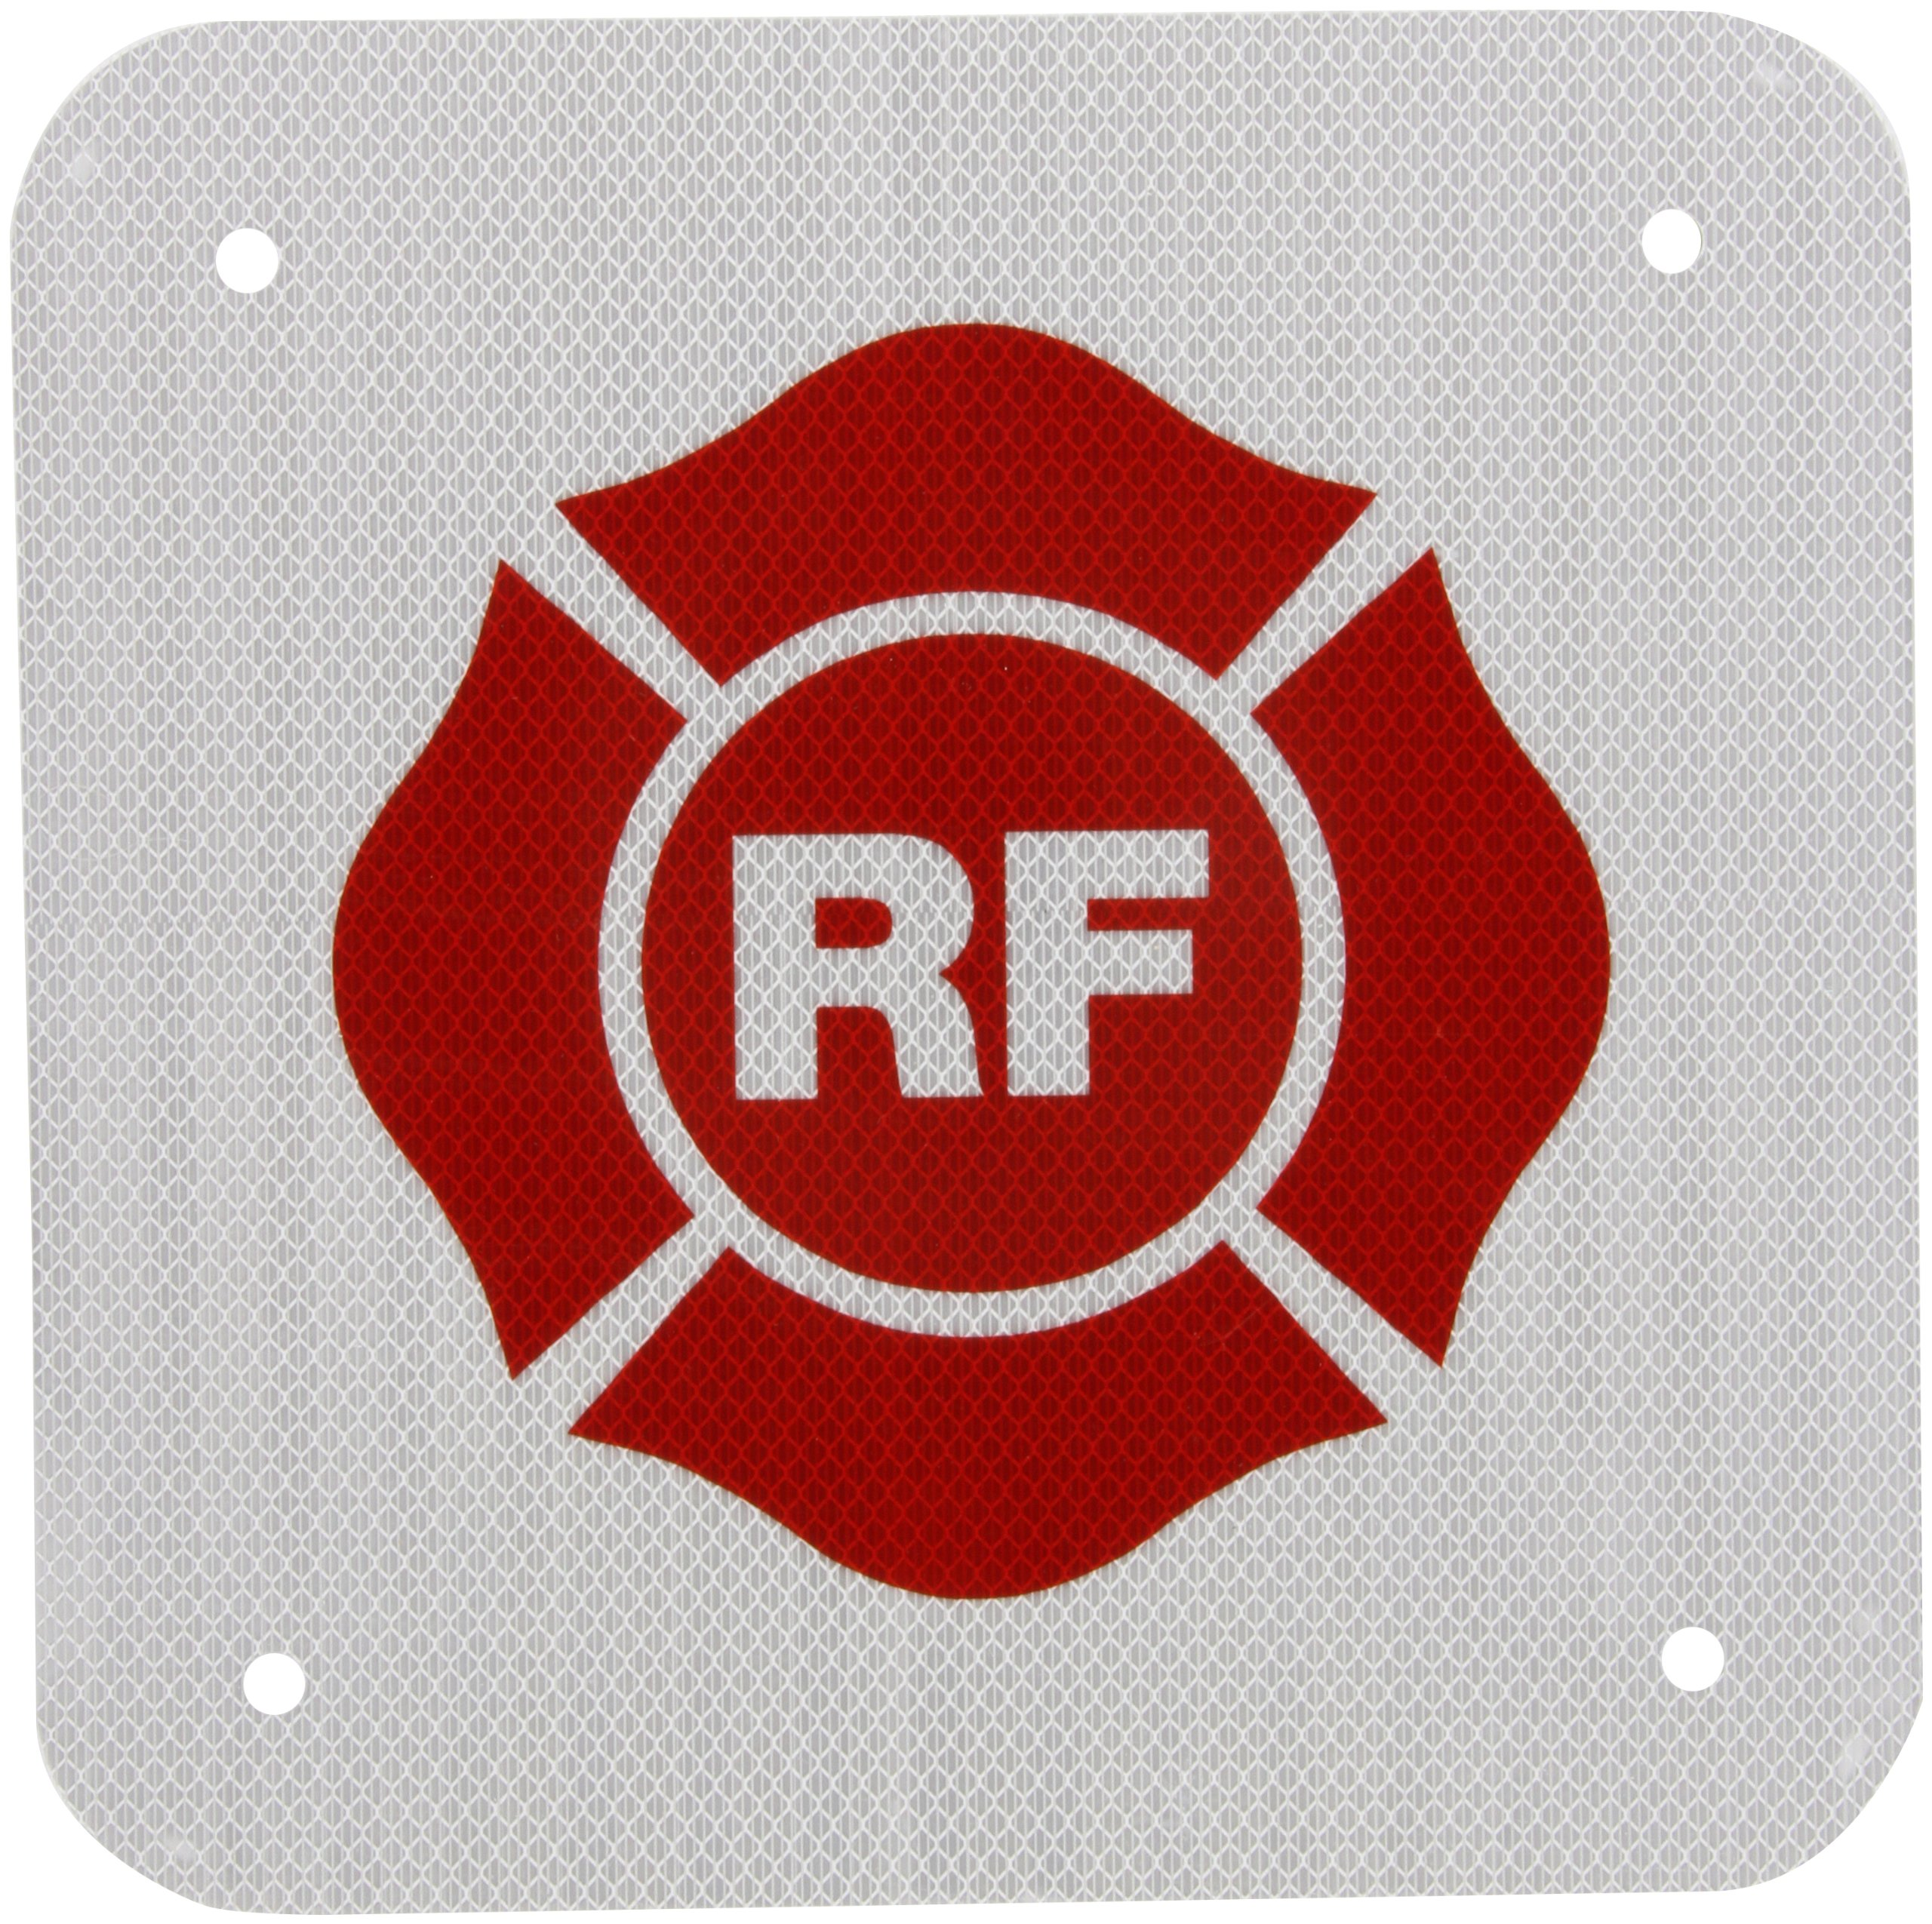 SmartSign 3M High Intensity Grade Reflective Sign, Legend''RF for Roof - Floor Truss Construction'', 12'' square, Red on White